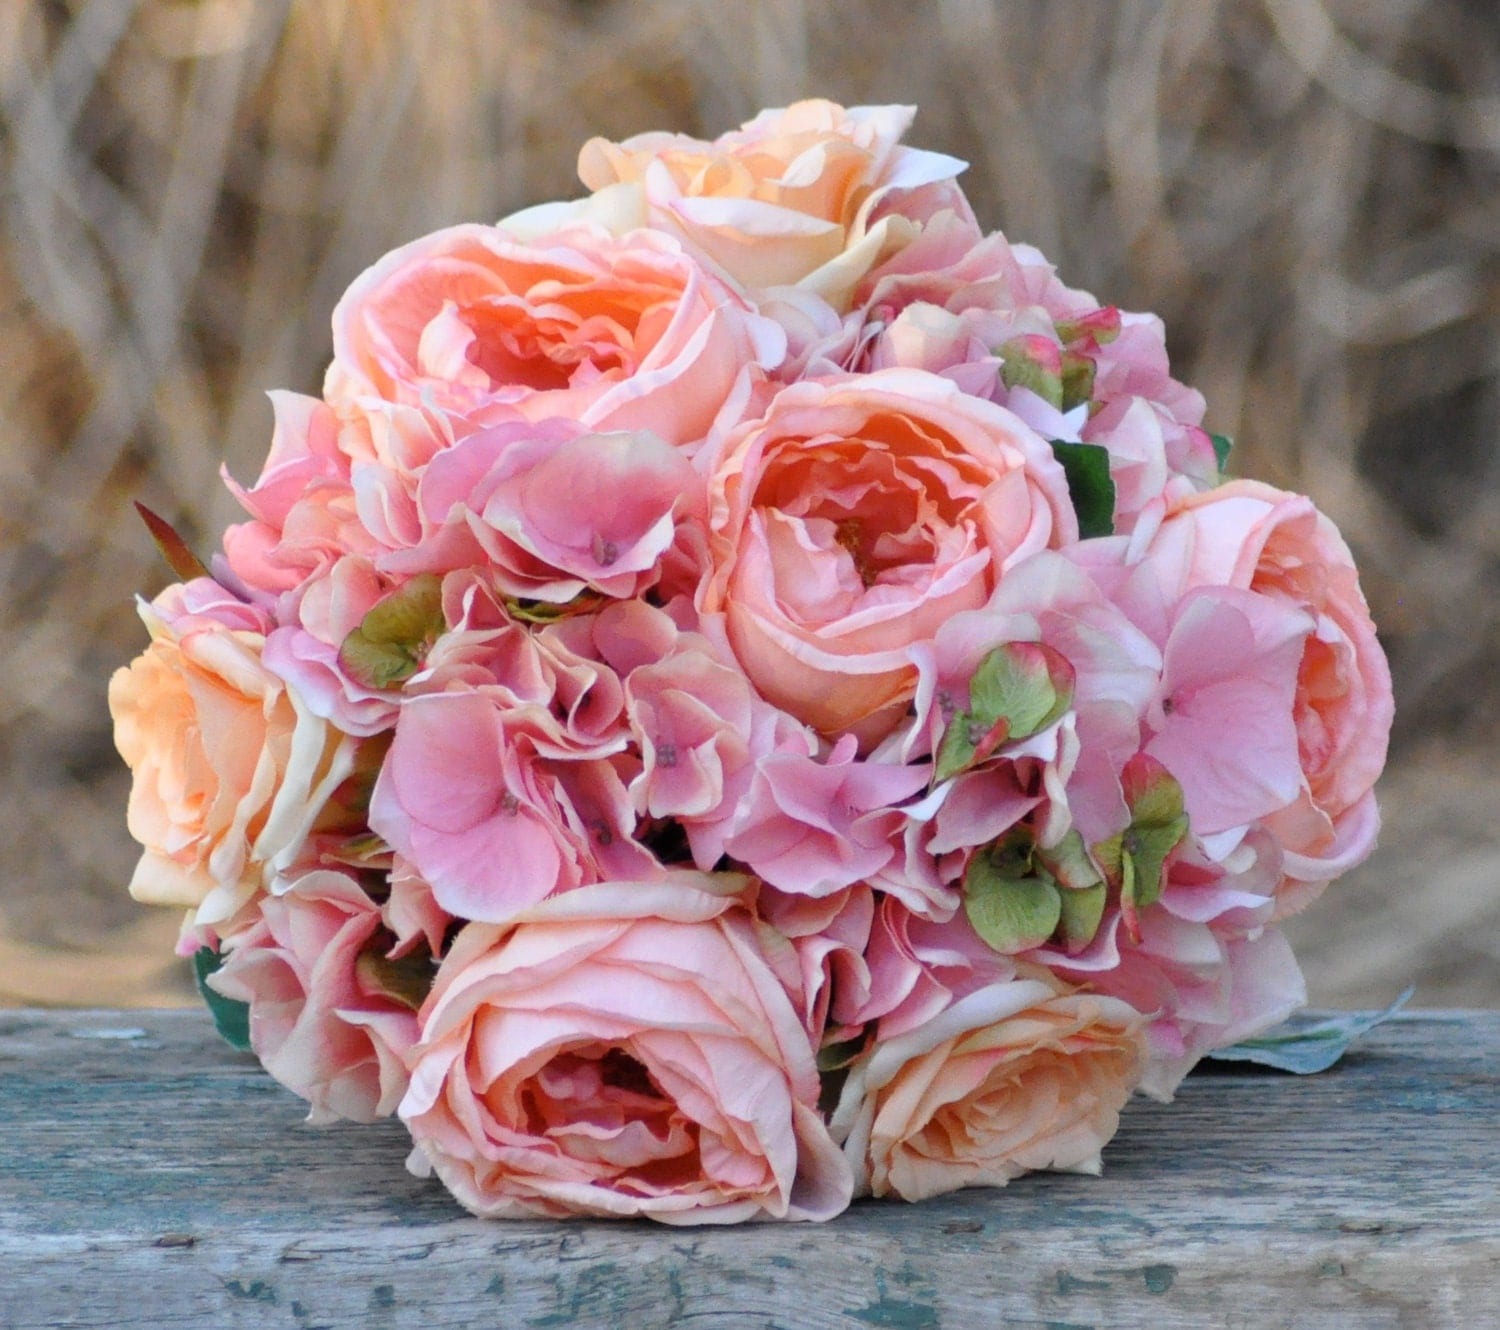 Coral rose and pink hydrangea wedding bouquet made of silk roses.